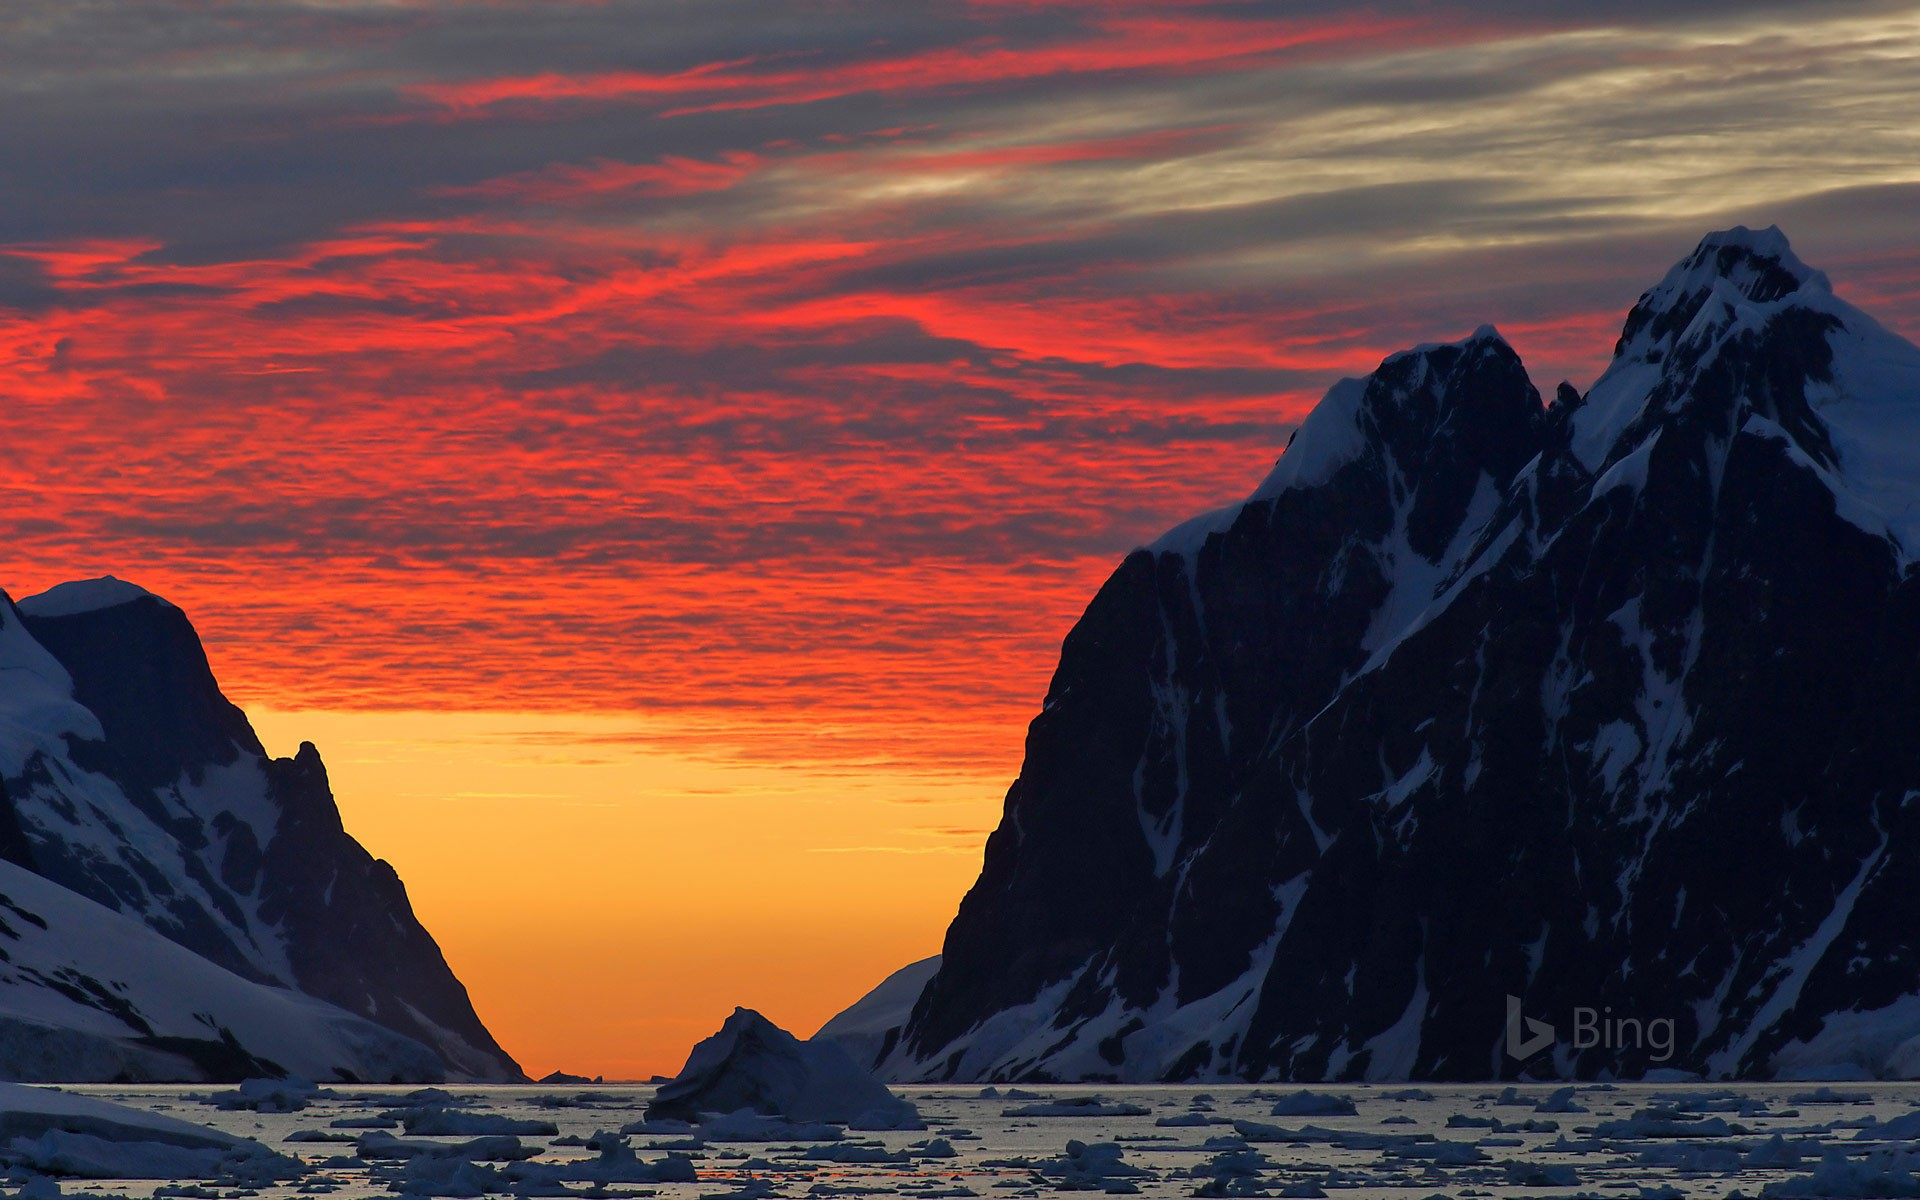 Coastline at sunset, Antarctic Peninsula, Antarctica